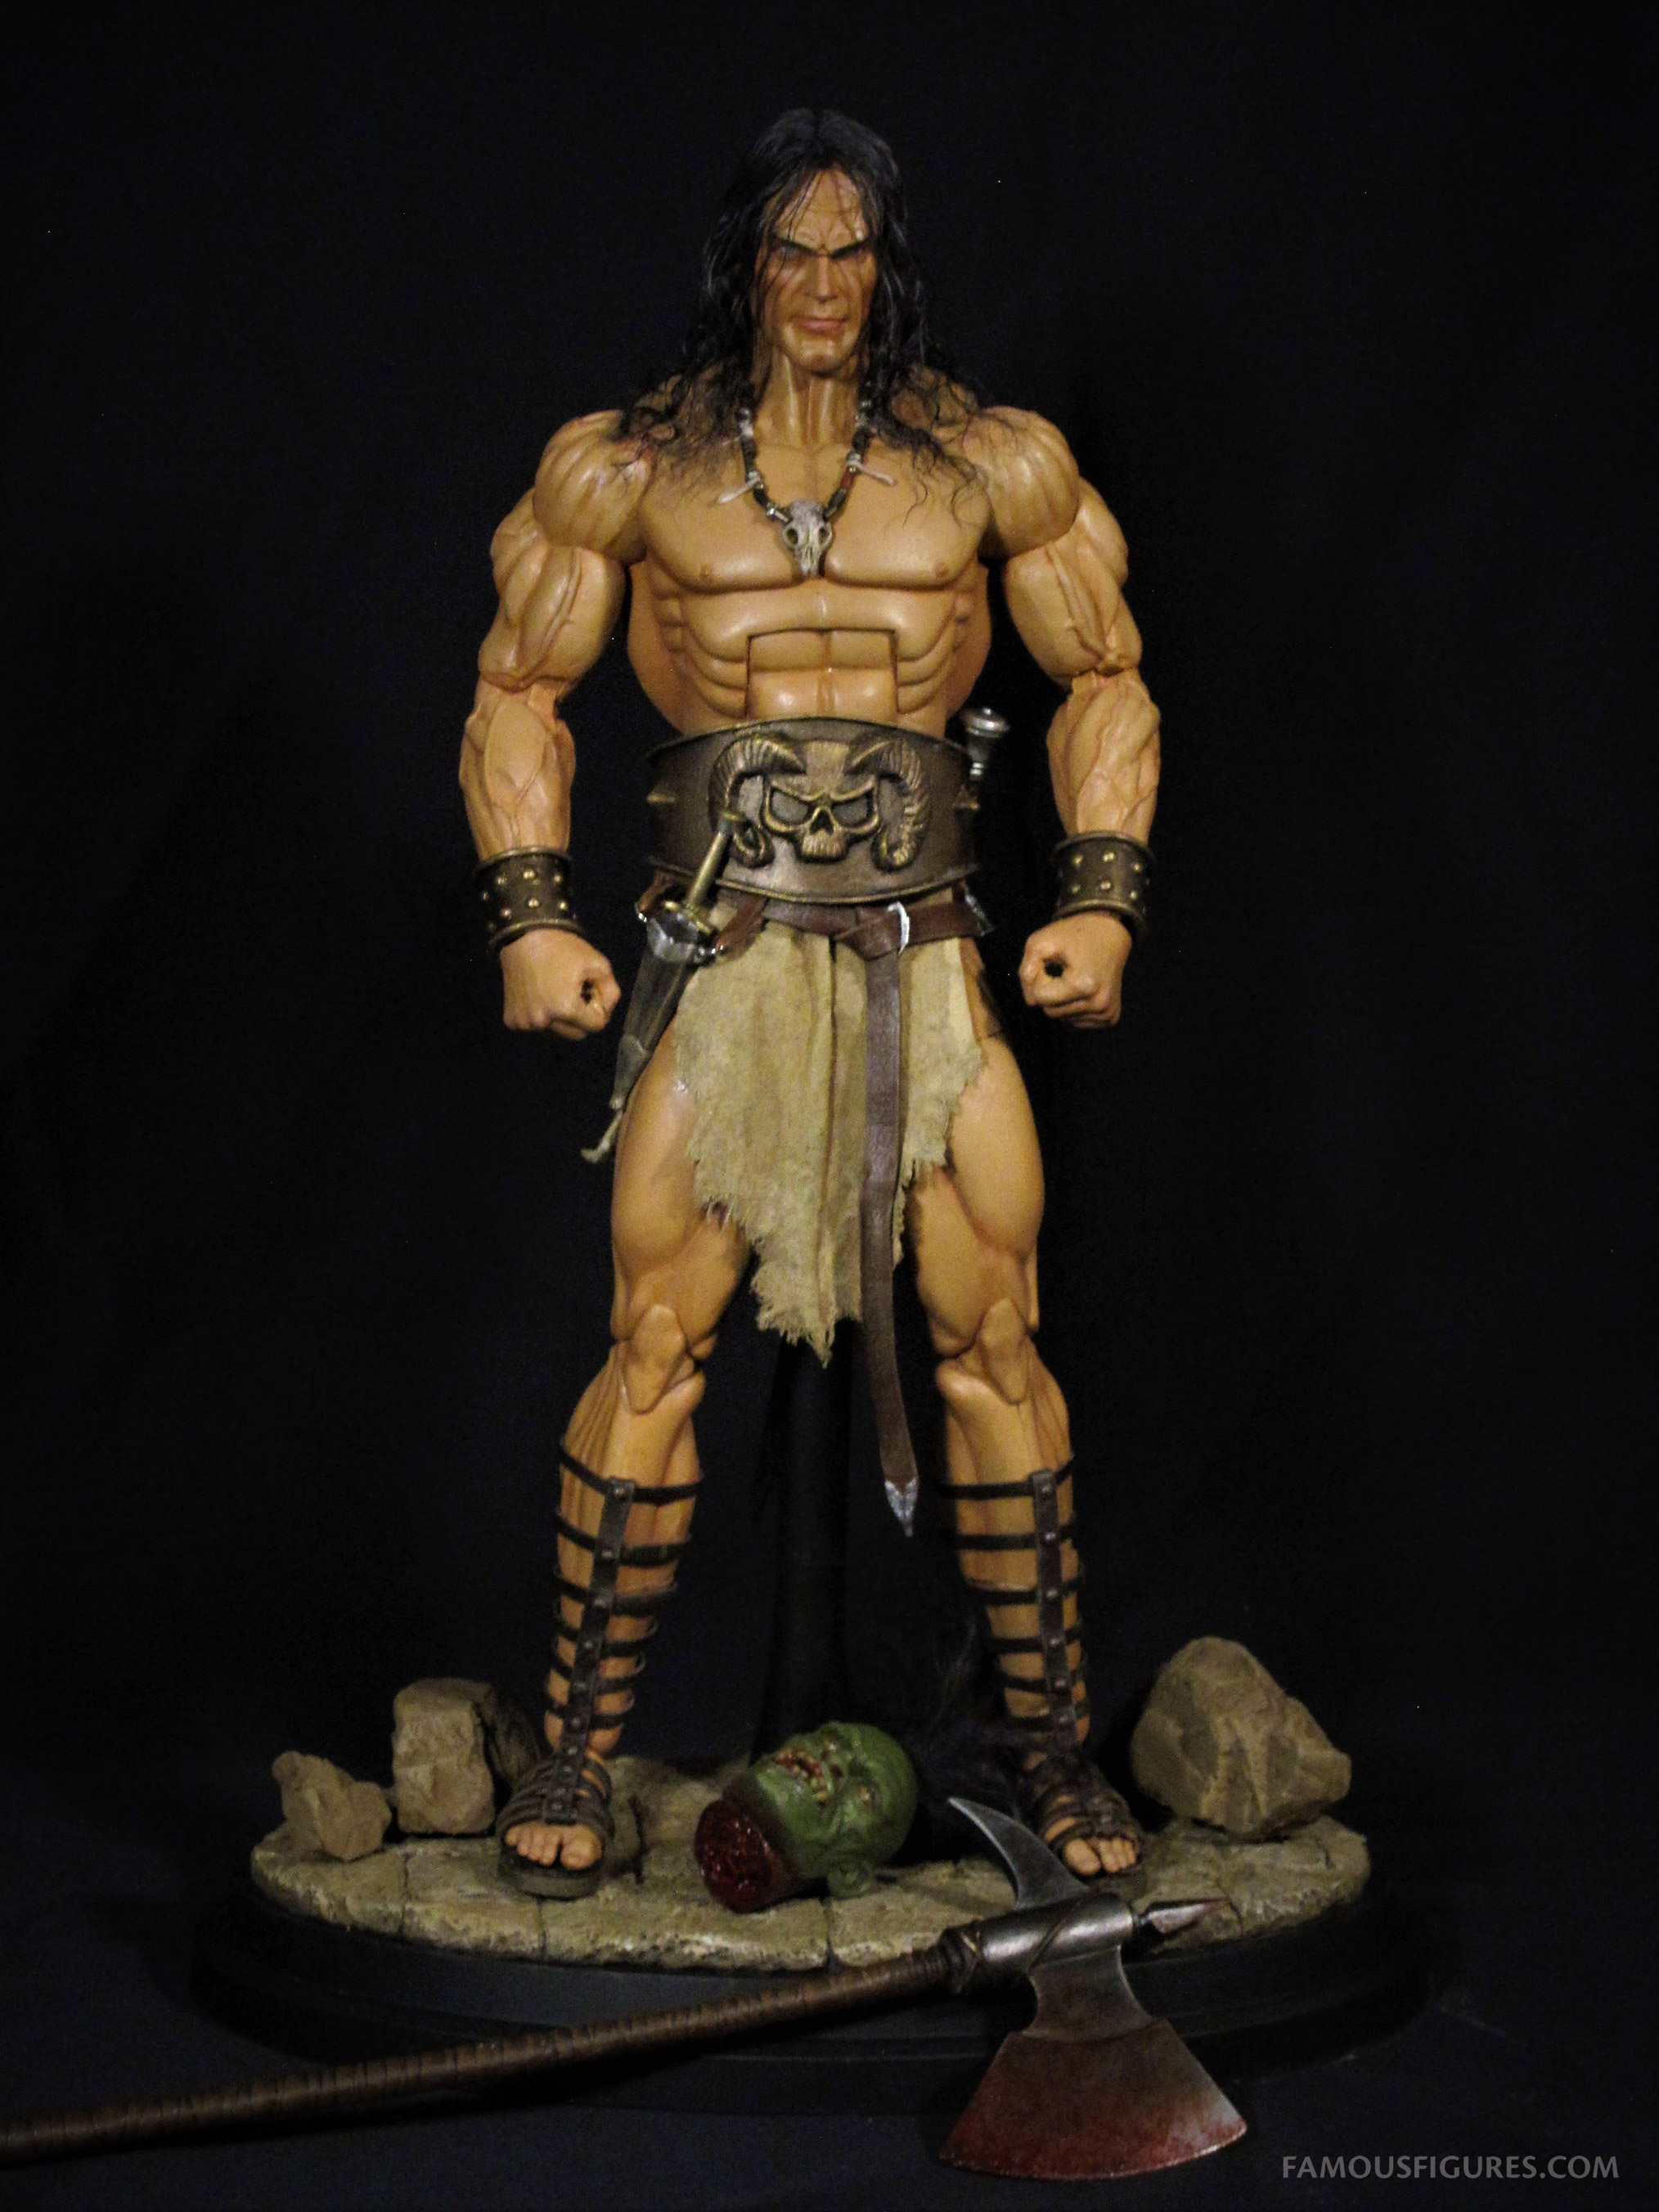 Conan the Barbarian 12-inch figure full